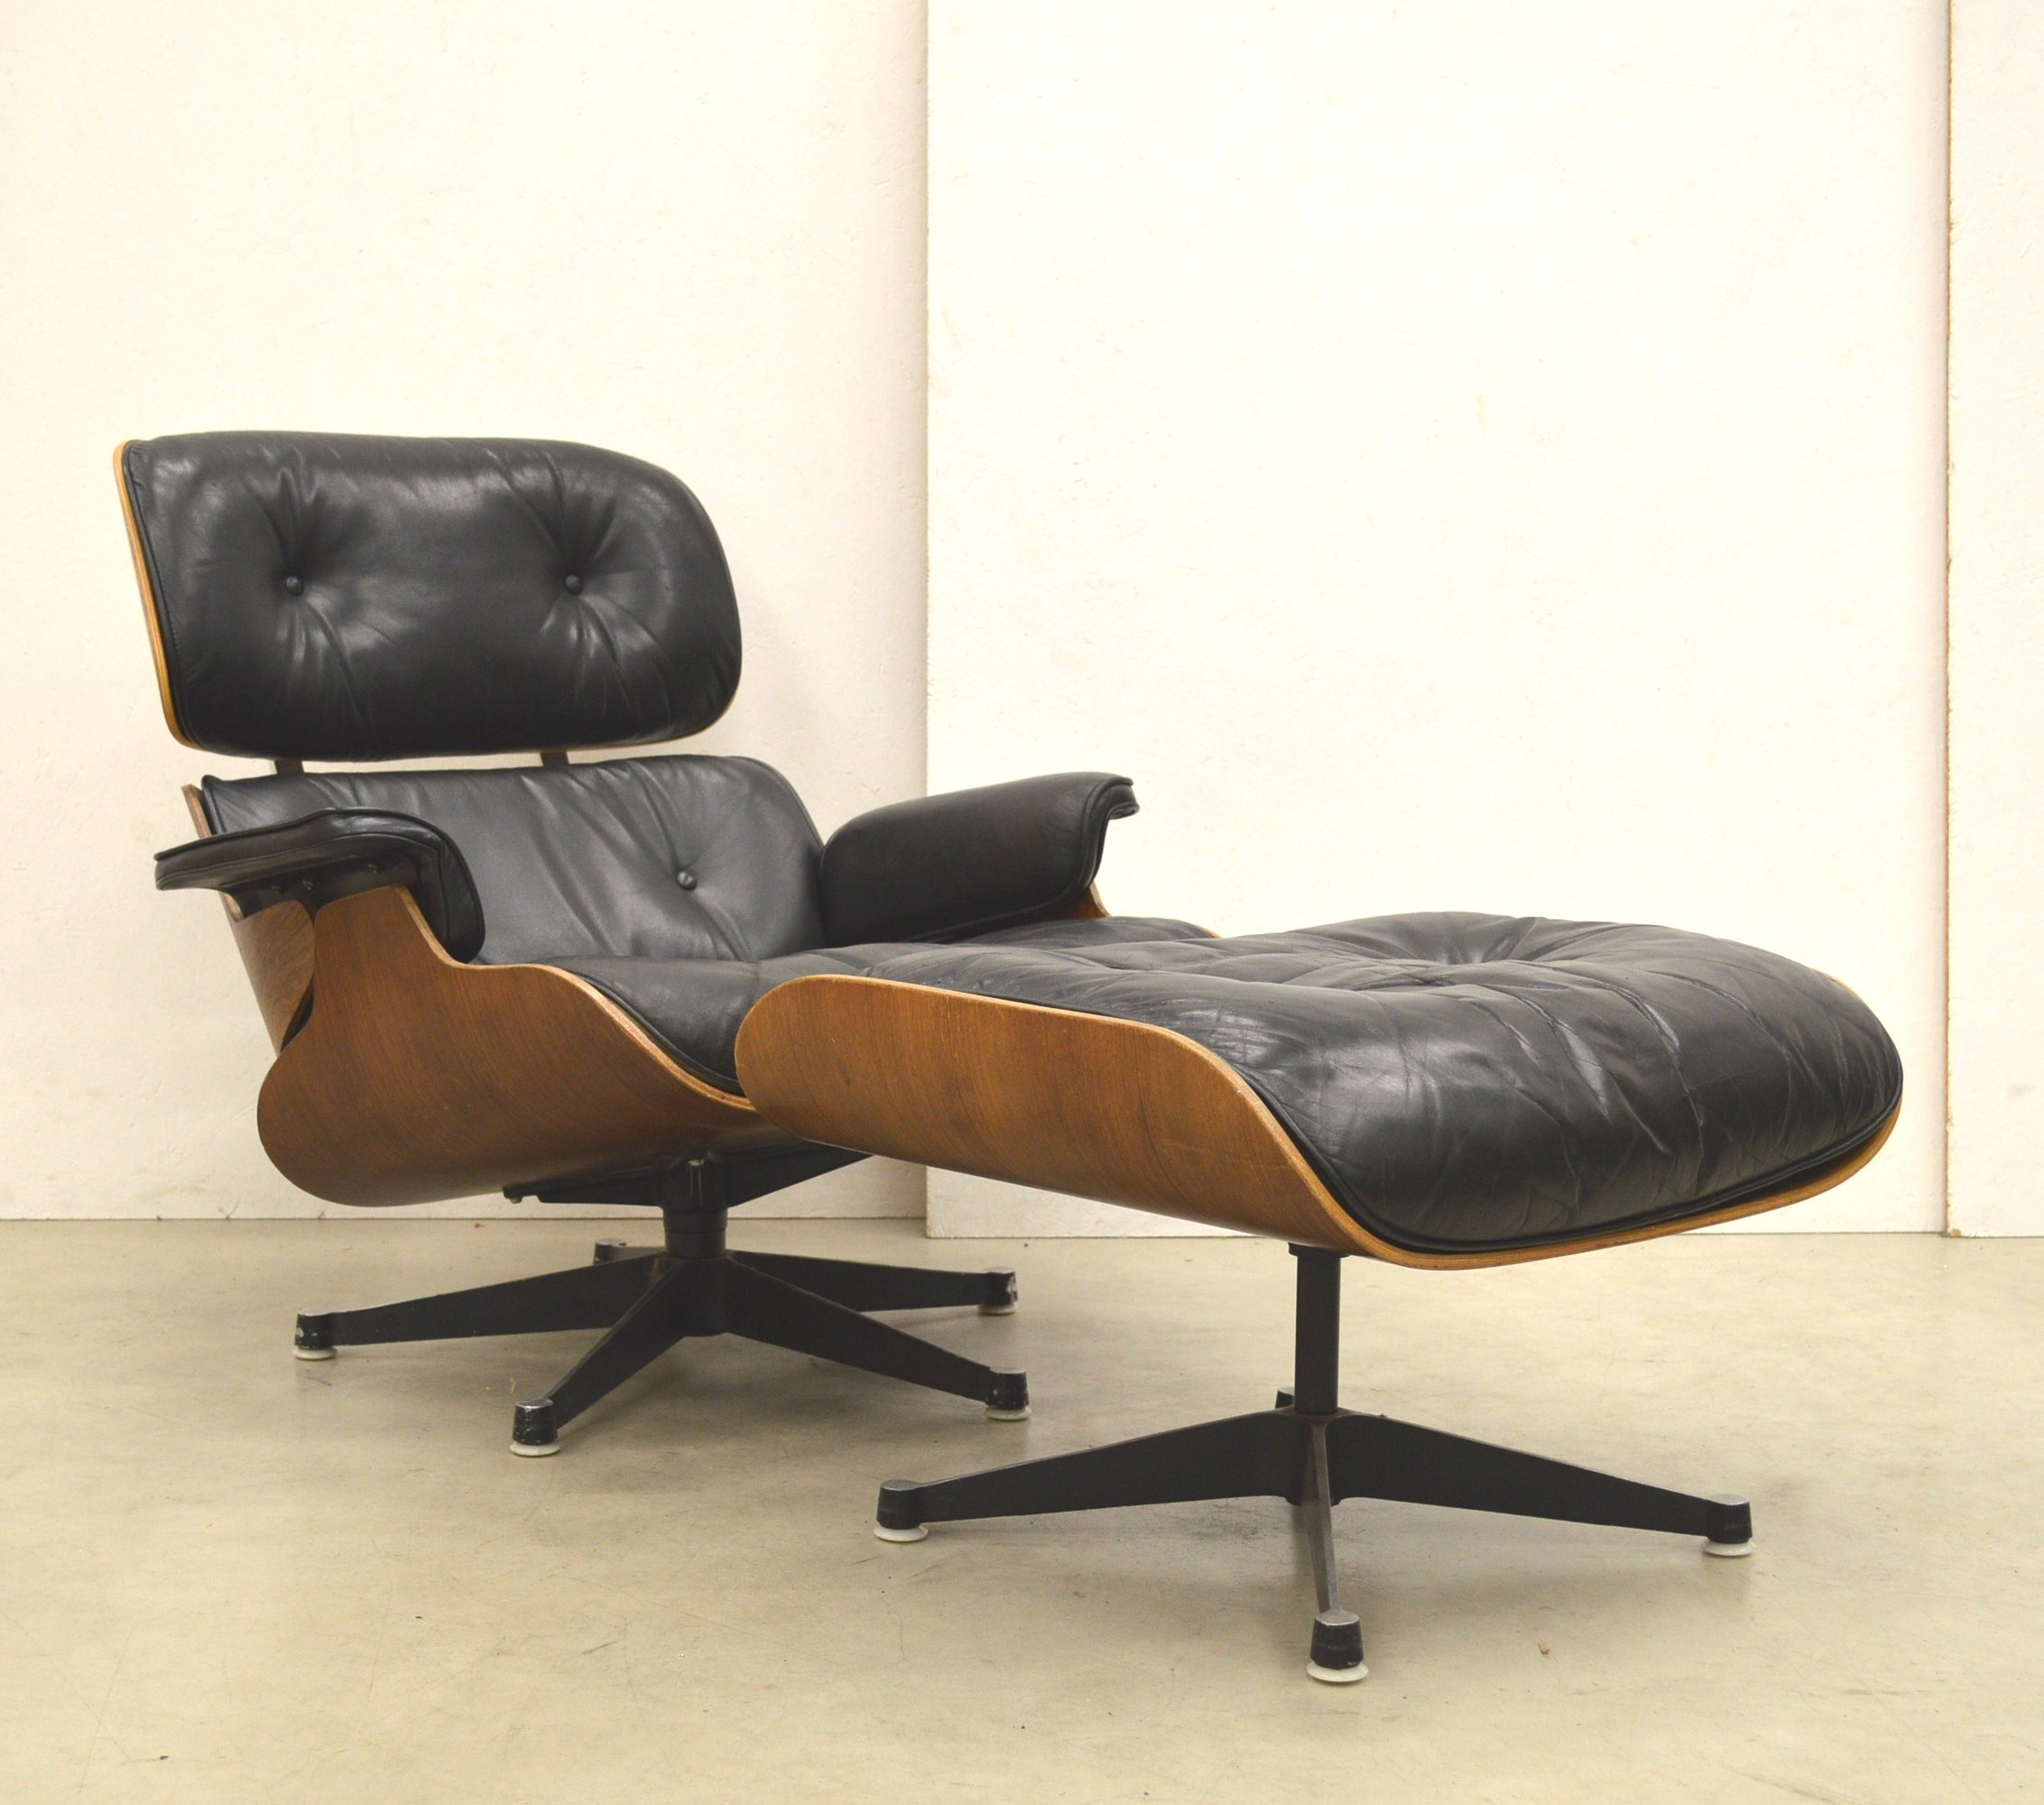 Merveilleux 1st Edition Eames Lounge Chair U0026 Ottoman By Herman Miller, 1950s